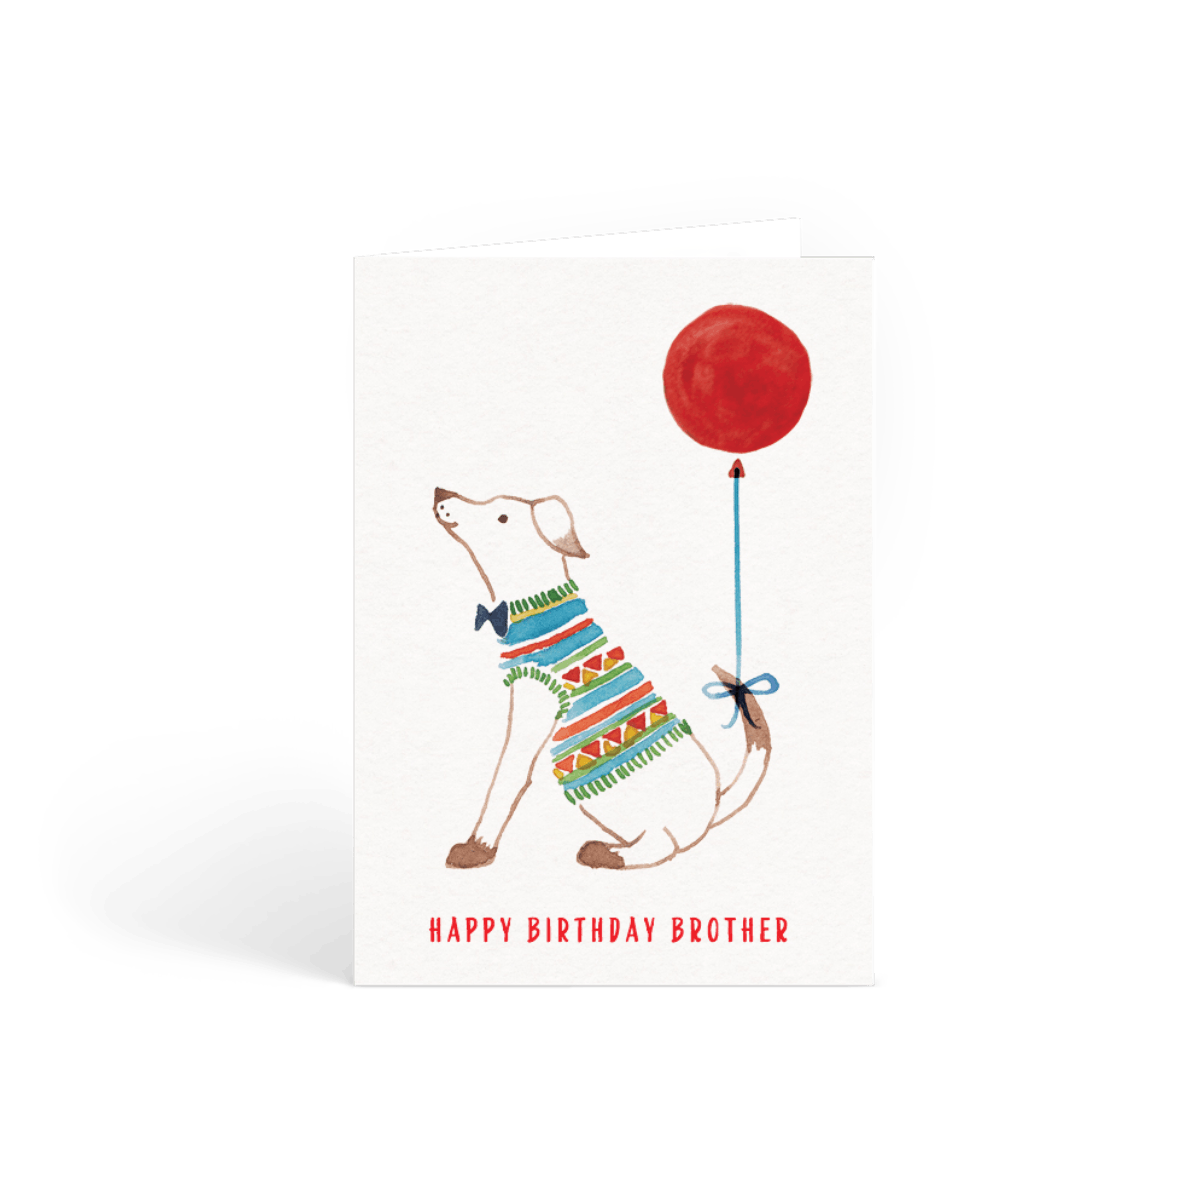 Https%3a%2f%2fwww.papier.com%2fproduct image%2f49239%2f2%2fa dog and his balloon 12109 front 1542379703.png?ixlib=rb 1.1